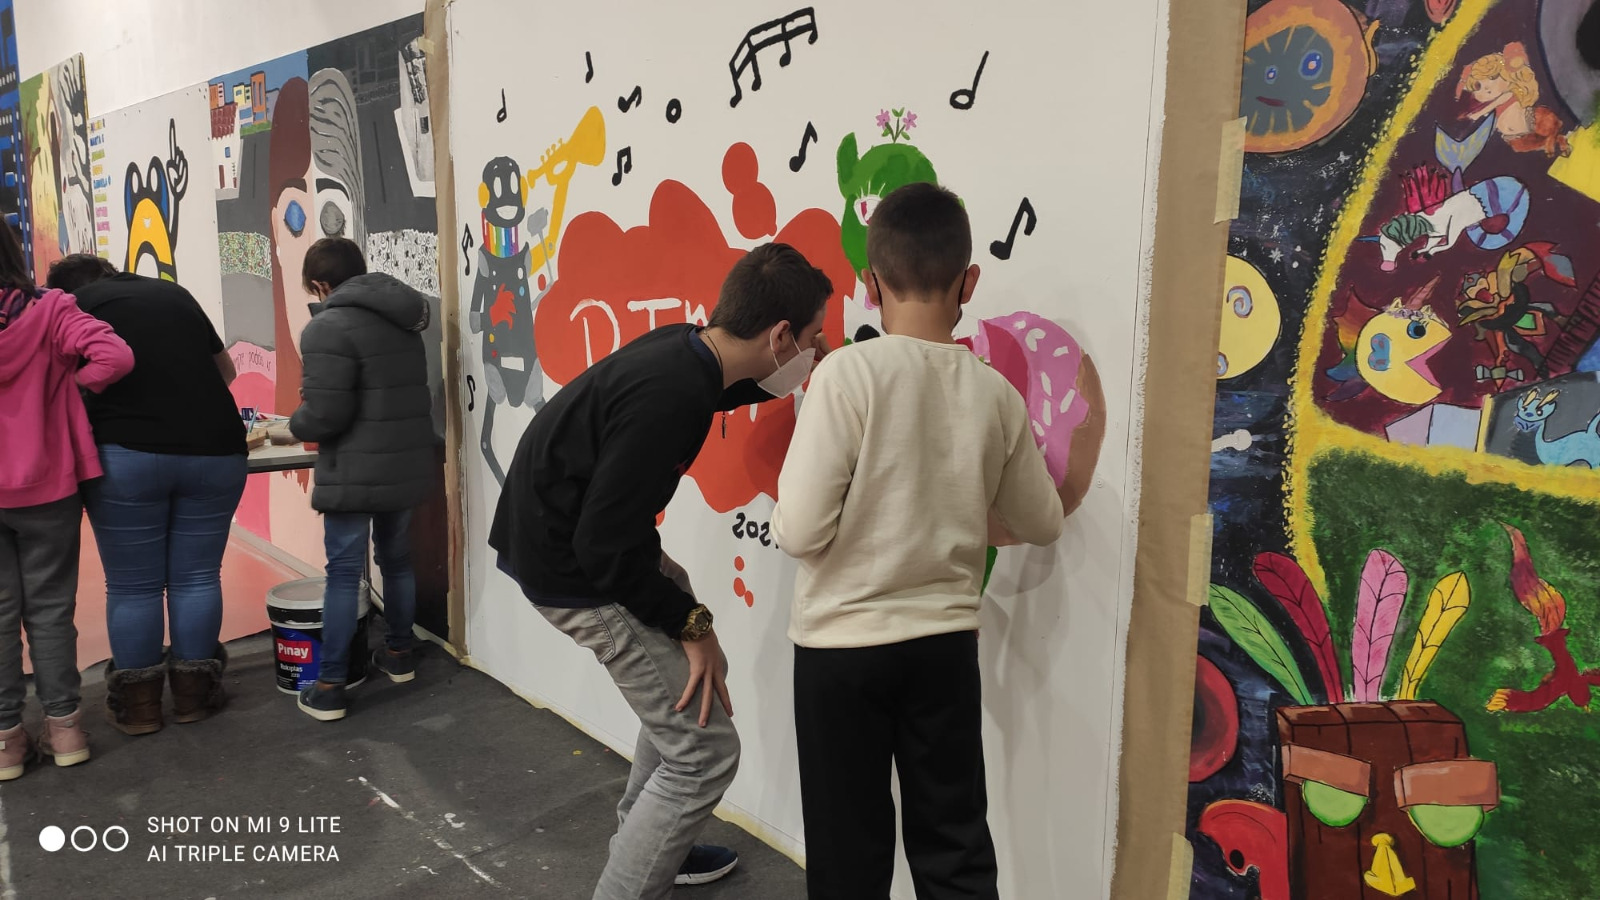 The Young Space is back full of action with Rima and Stop Motion entertainment programs